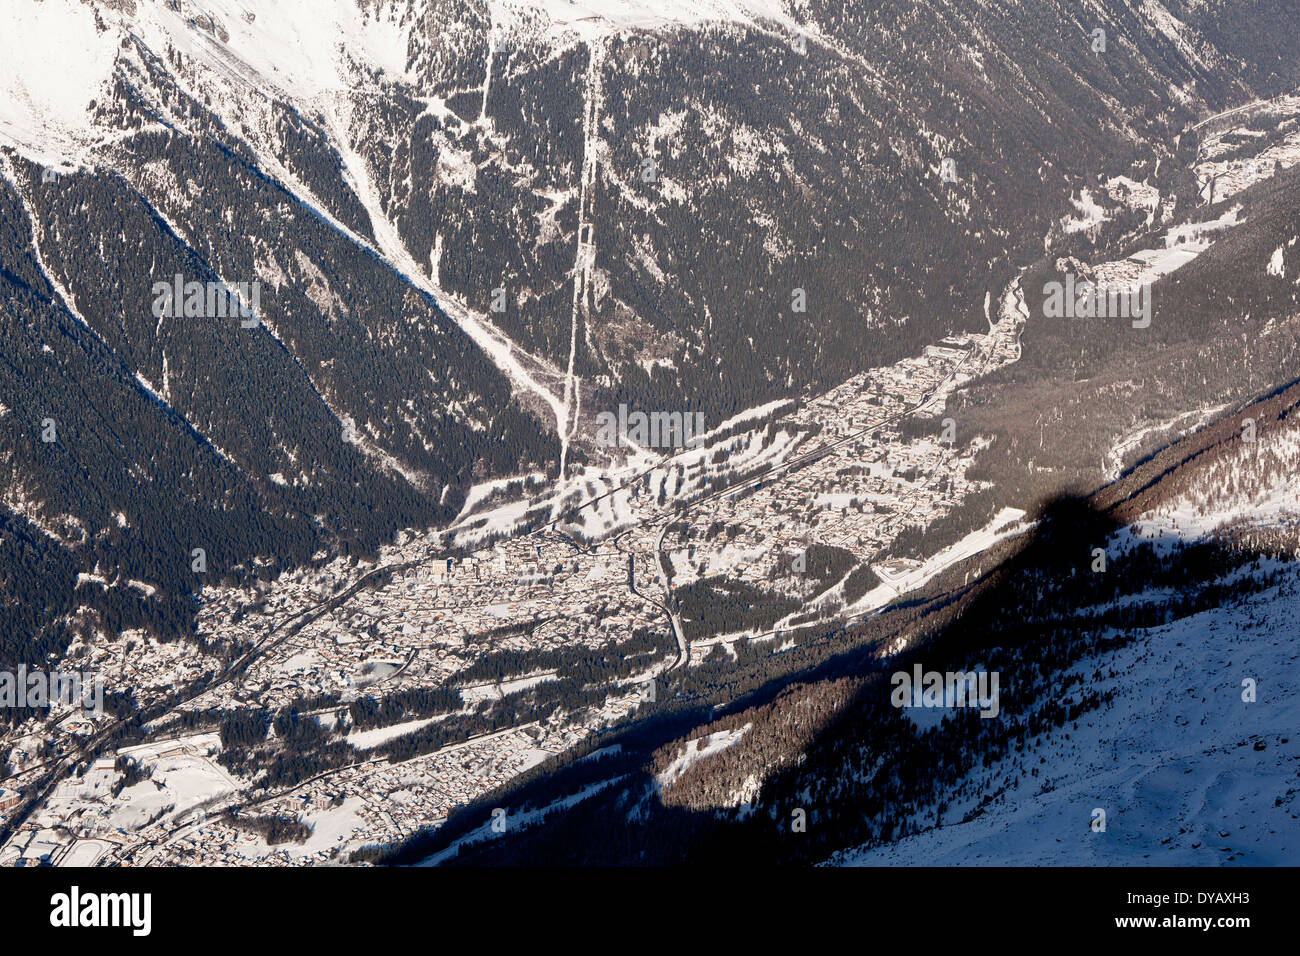 The village of Chamonix Mont-Blanc seen from a lookout point at the Aiguille Du Midi (3842m) mountain top. - Stock Image